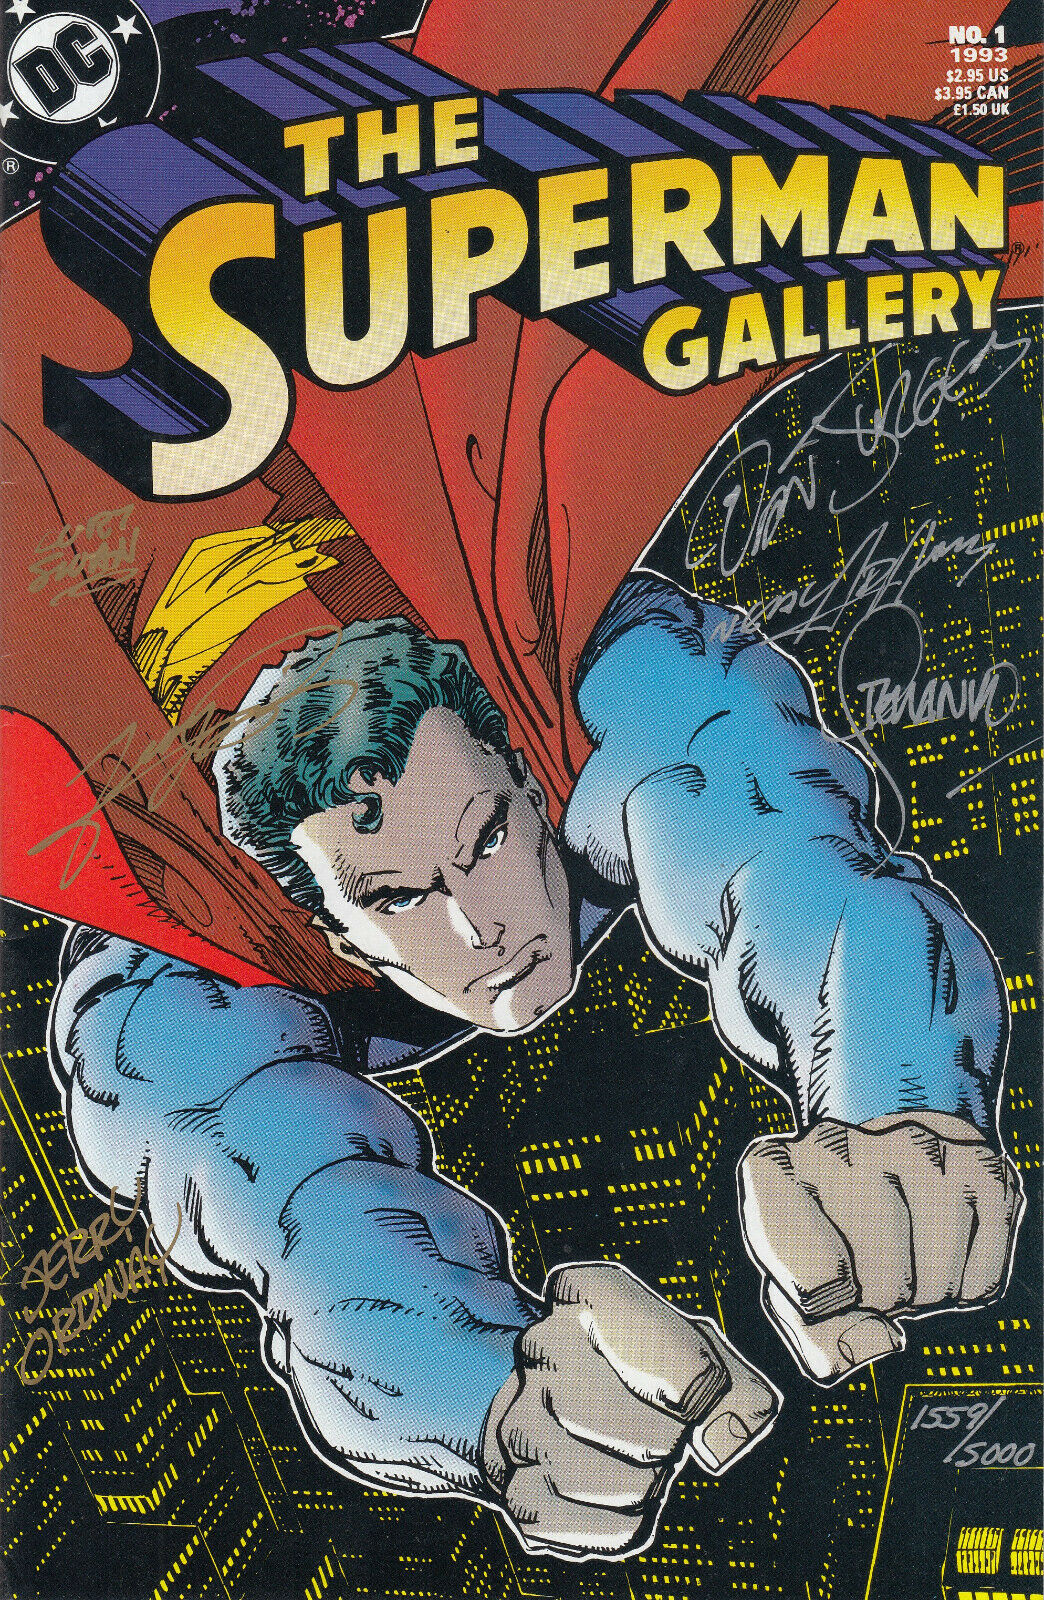 DC Comics Superman Gallery #1, Signed 6x, George Perez, Neal Adams, Curt Swan